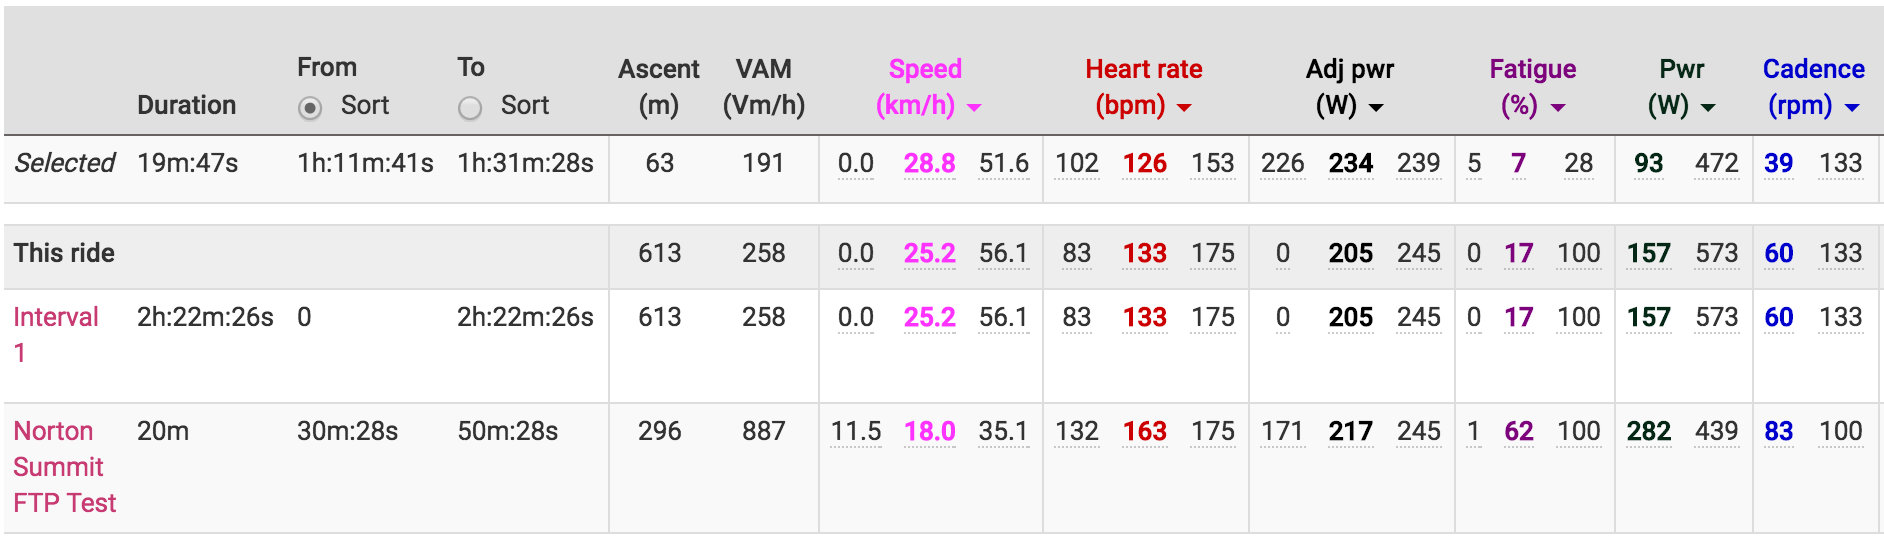 VAM in the the ride graph